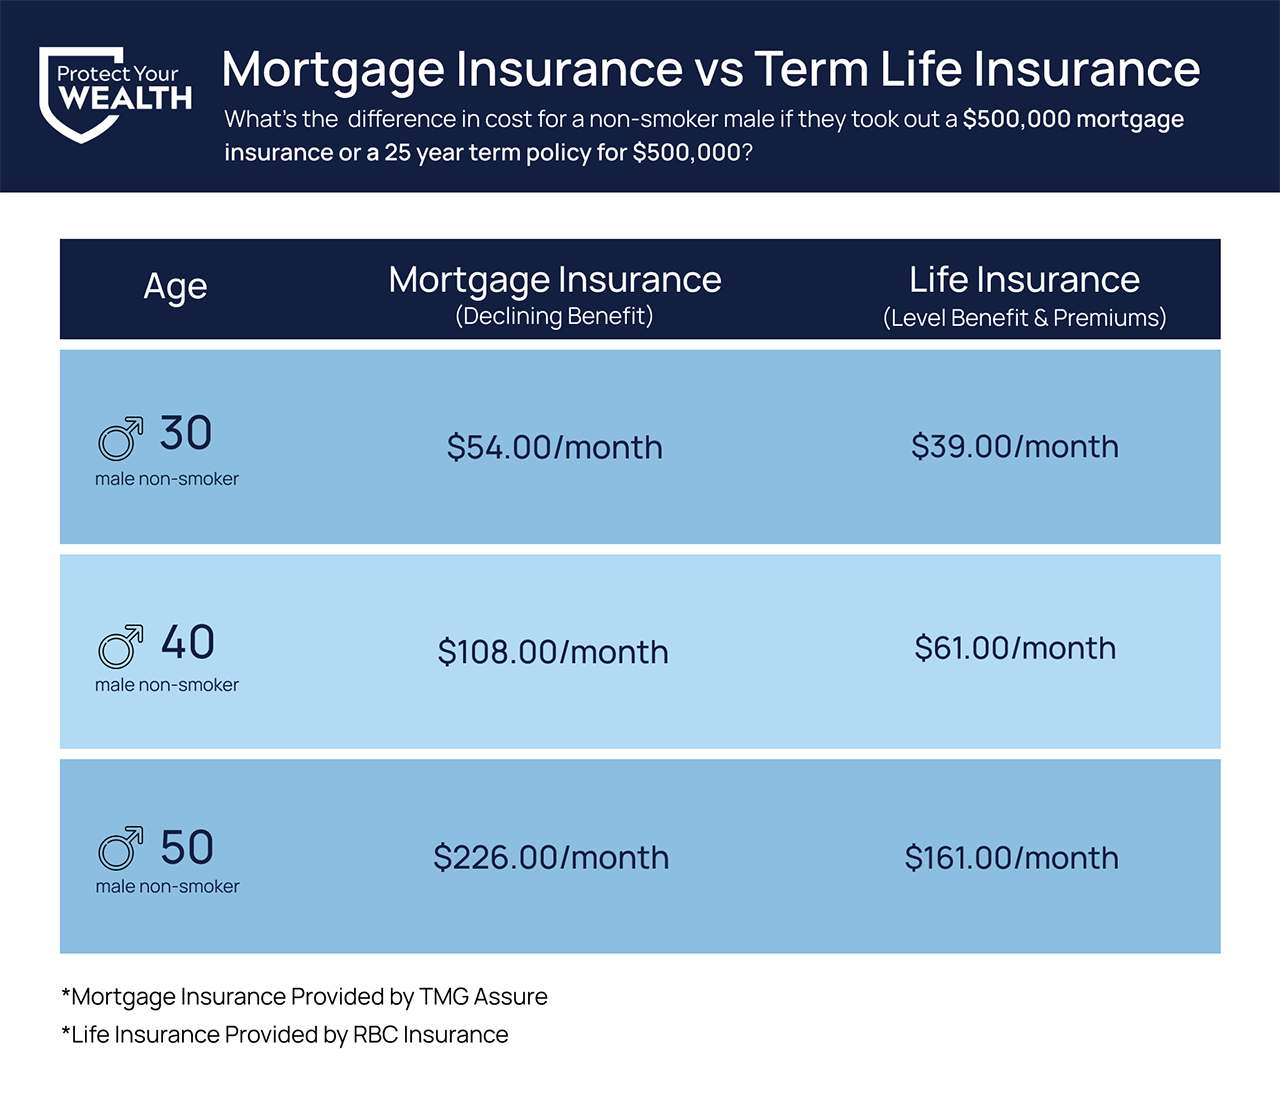 $500,000 mortgage insurance costs for ages 30, 40, and 50 vs costs for a $500,000 25 year term policy for ages 30, 40, 50.